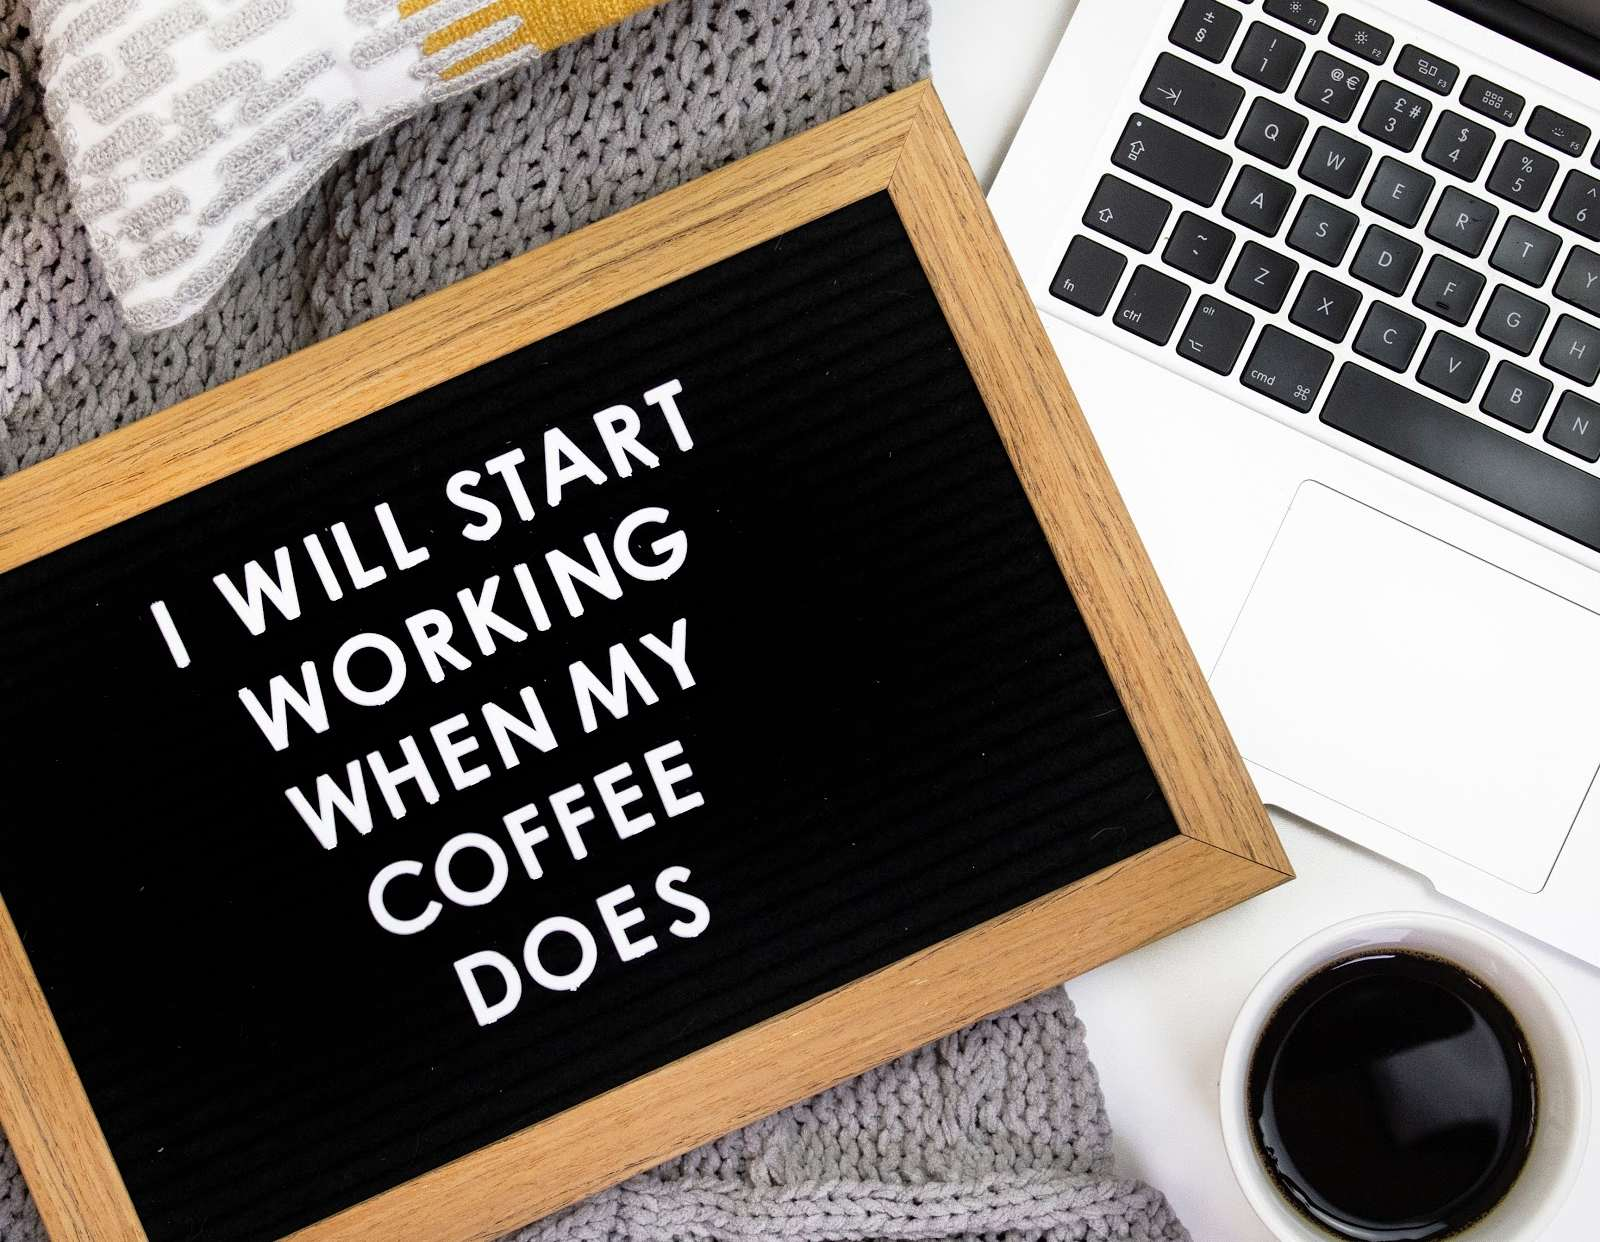 Black sign with white writing that says 'I will start working when my coffee does' beside Macbook and cup of black coffee on grey wooly blanket